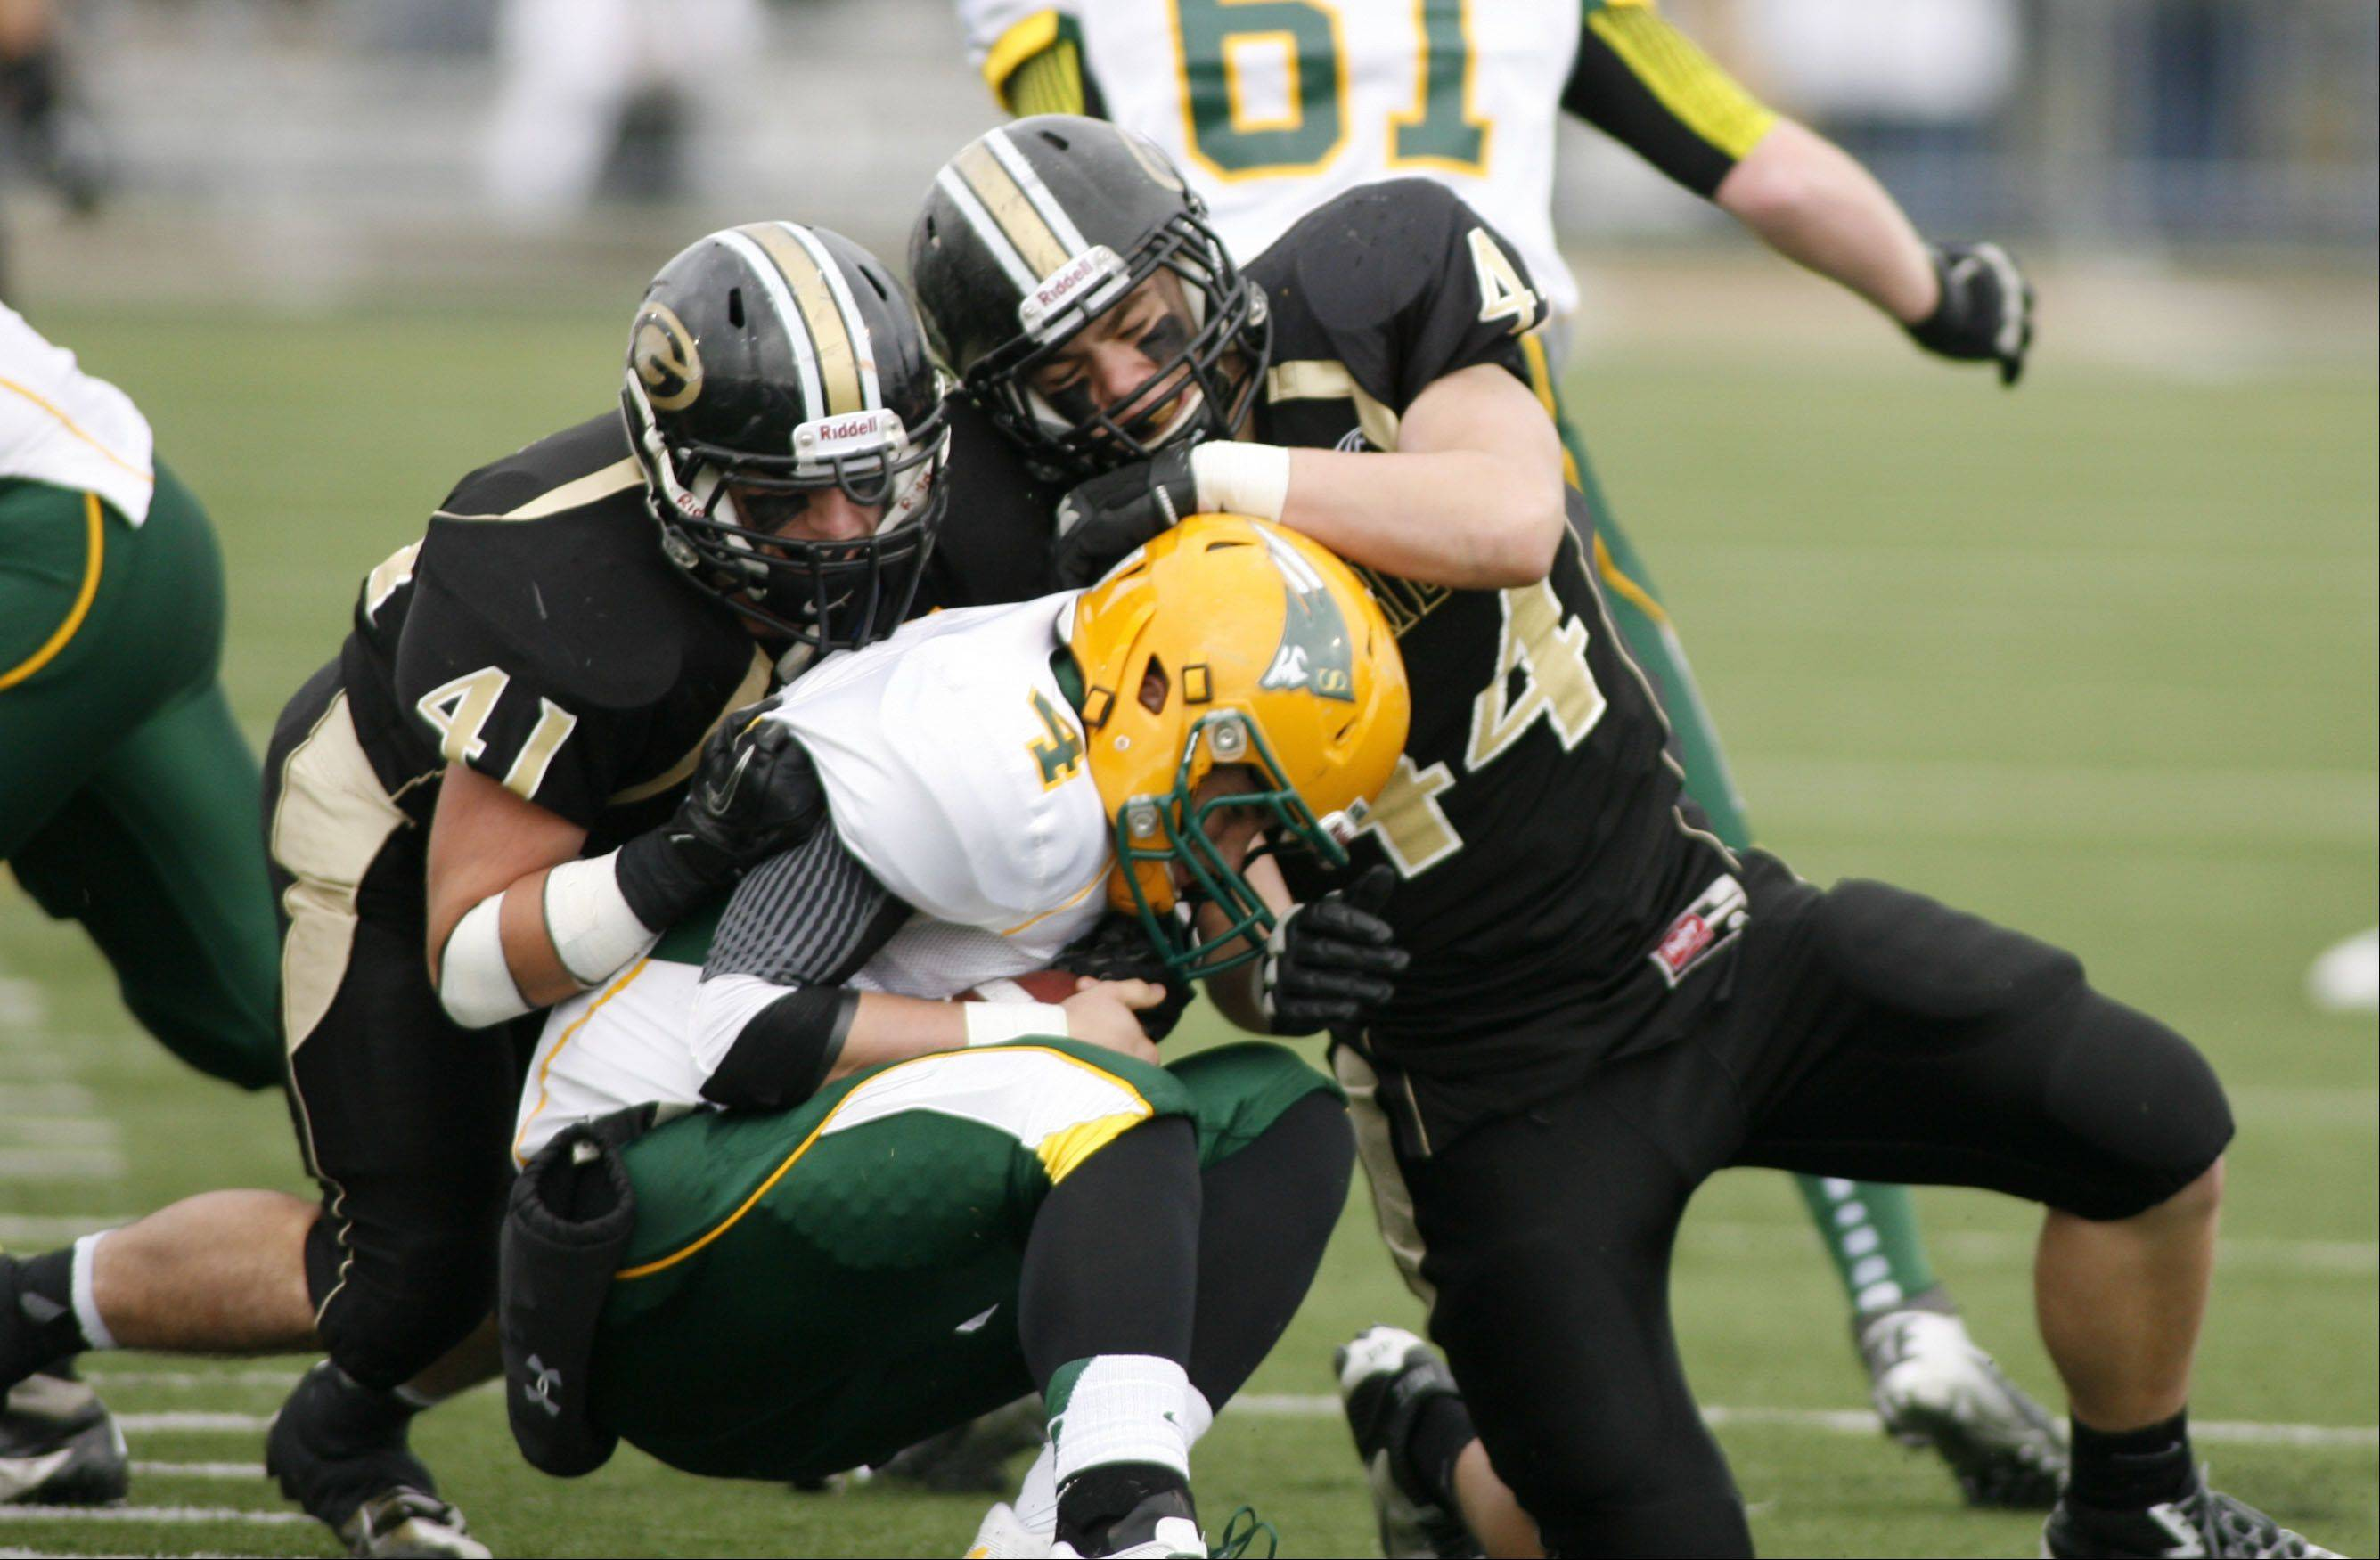 Glenbard North's Dominic Fornino (41) and Andrew Mulshine (44), sack Stevenson's Willie Bourbon (4), during second round Class 8A football playoffs.